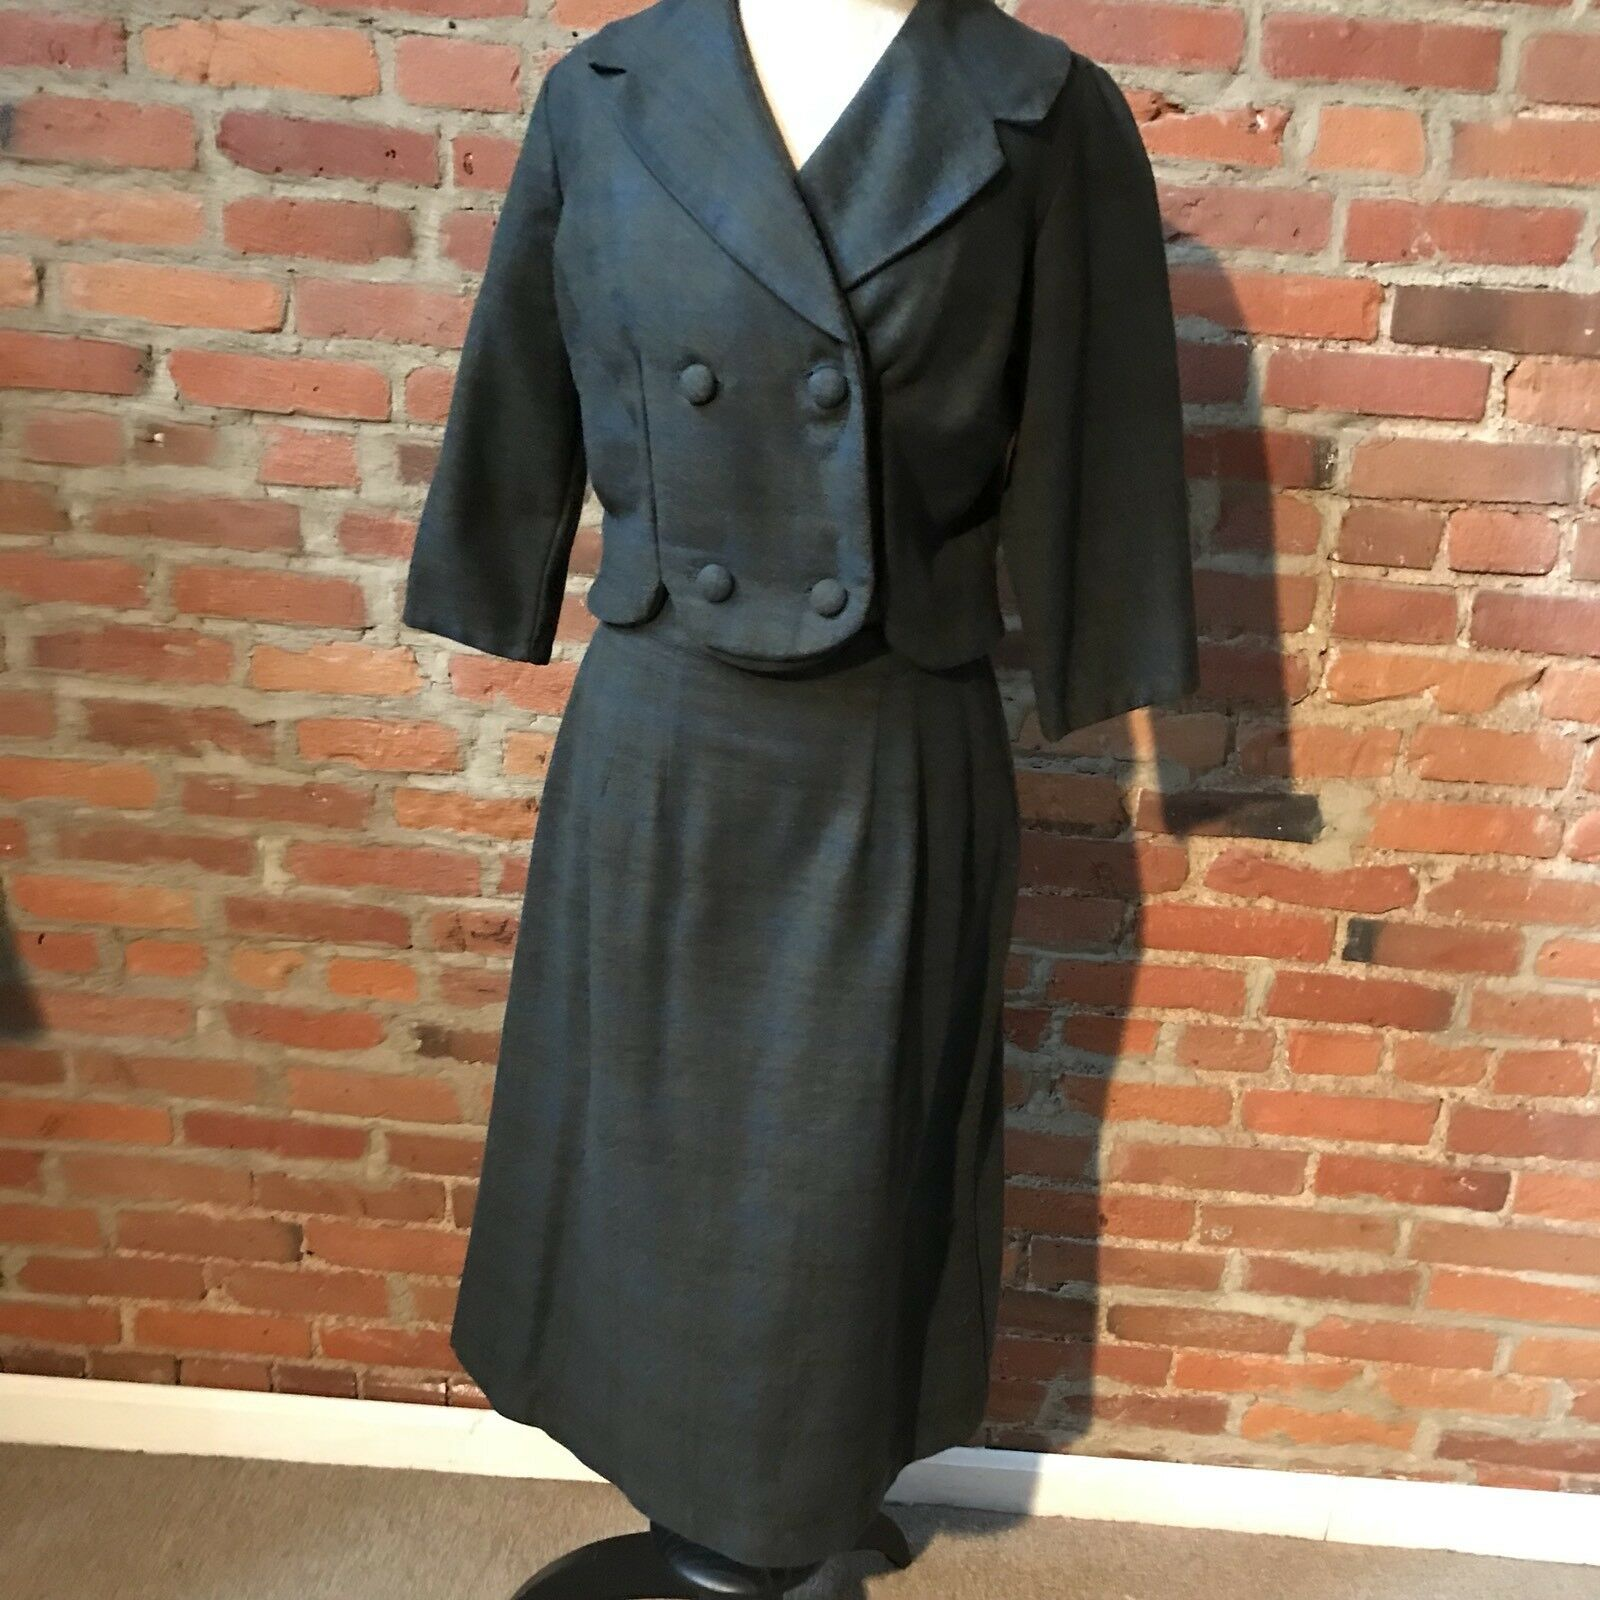 Vintage 50's Wool Plaid Skirt Suit  Double Breasted Scallop Charcoal grau 8